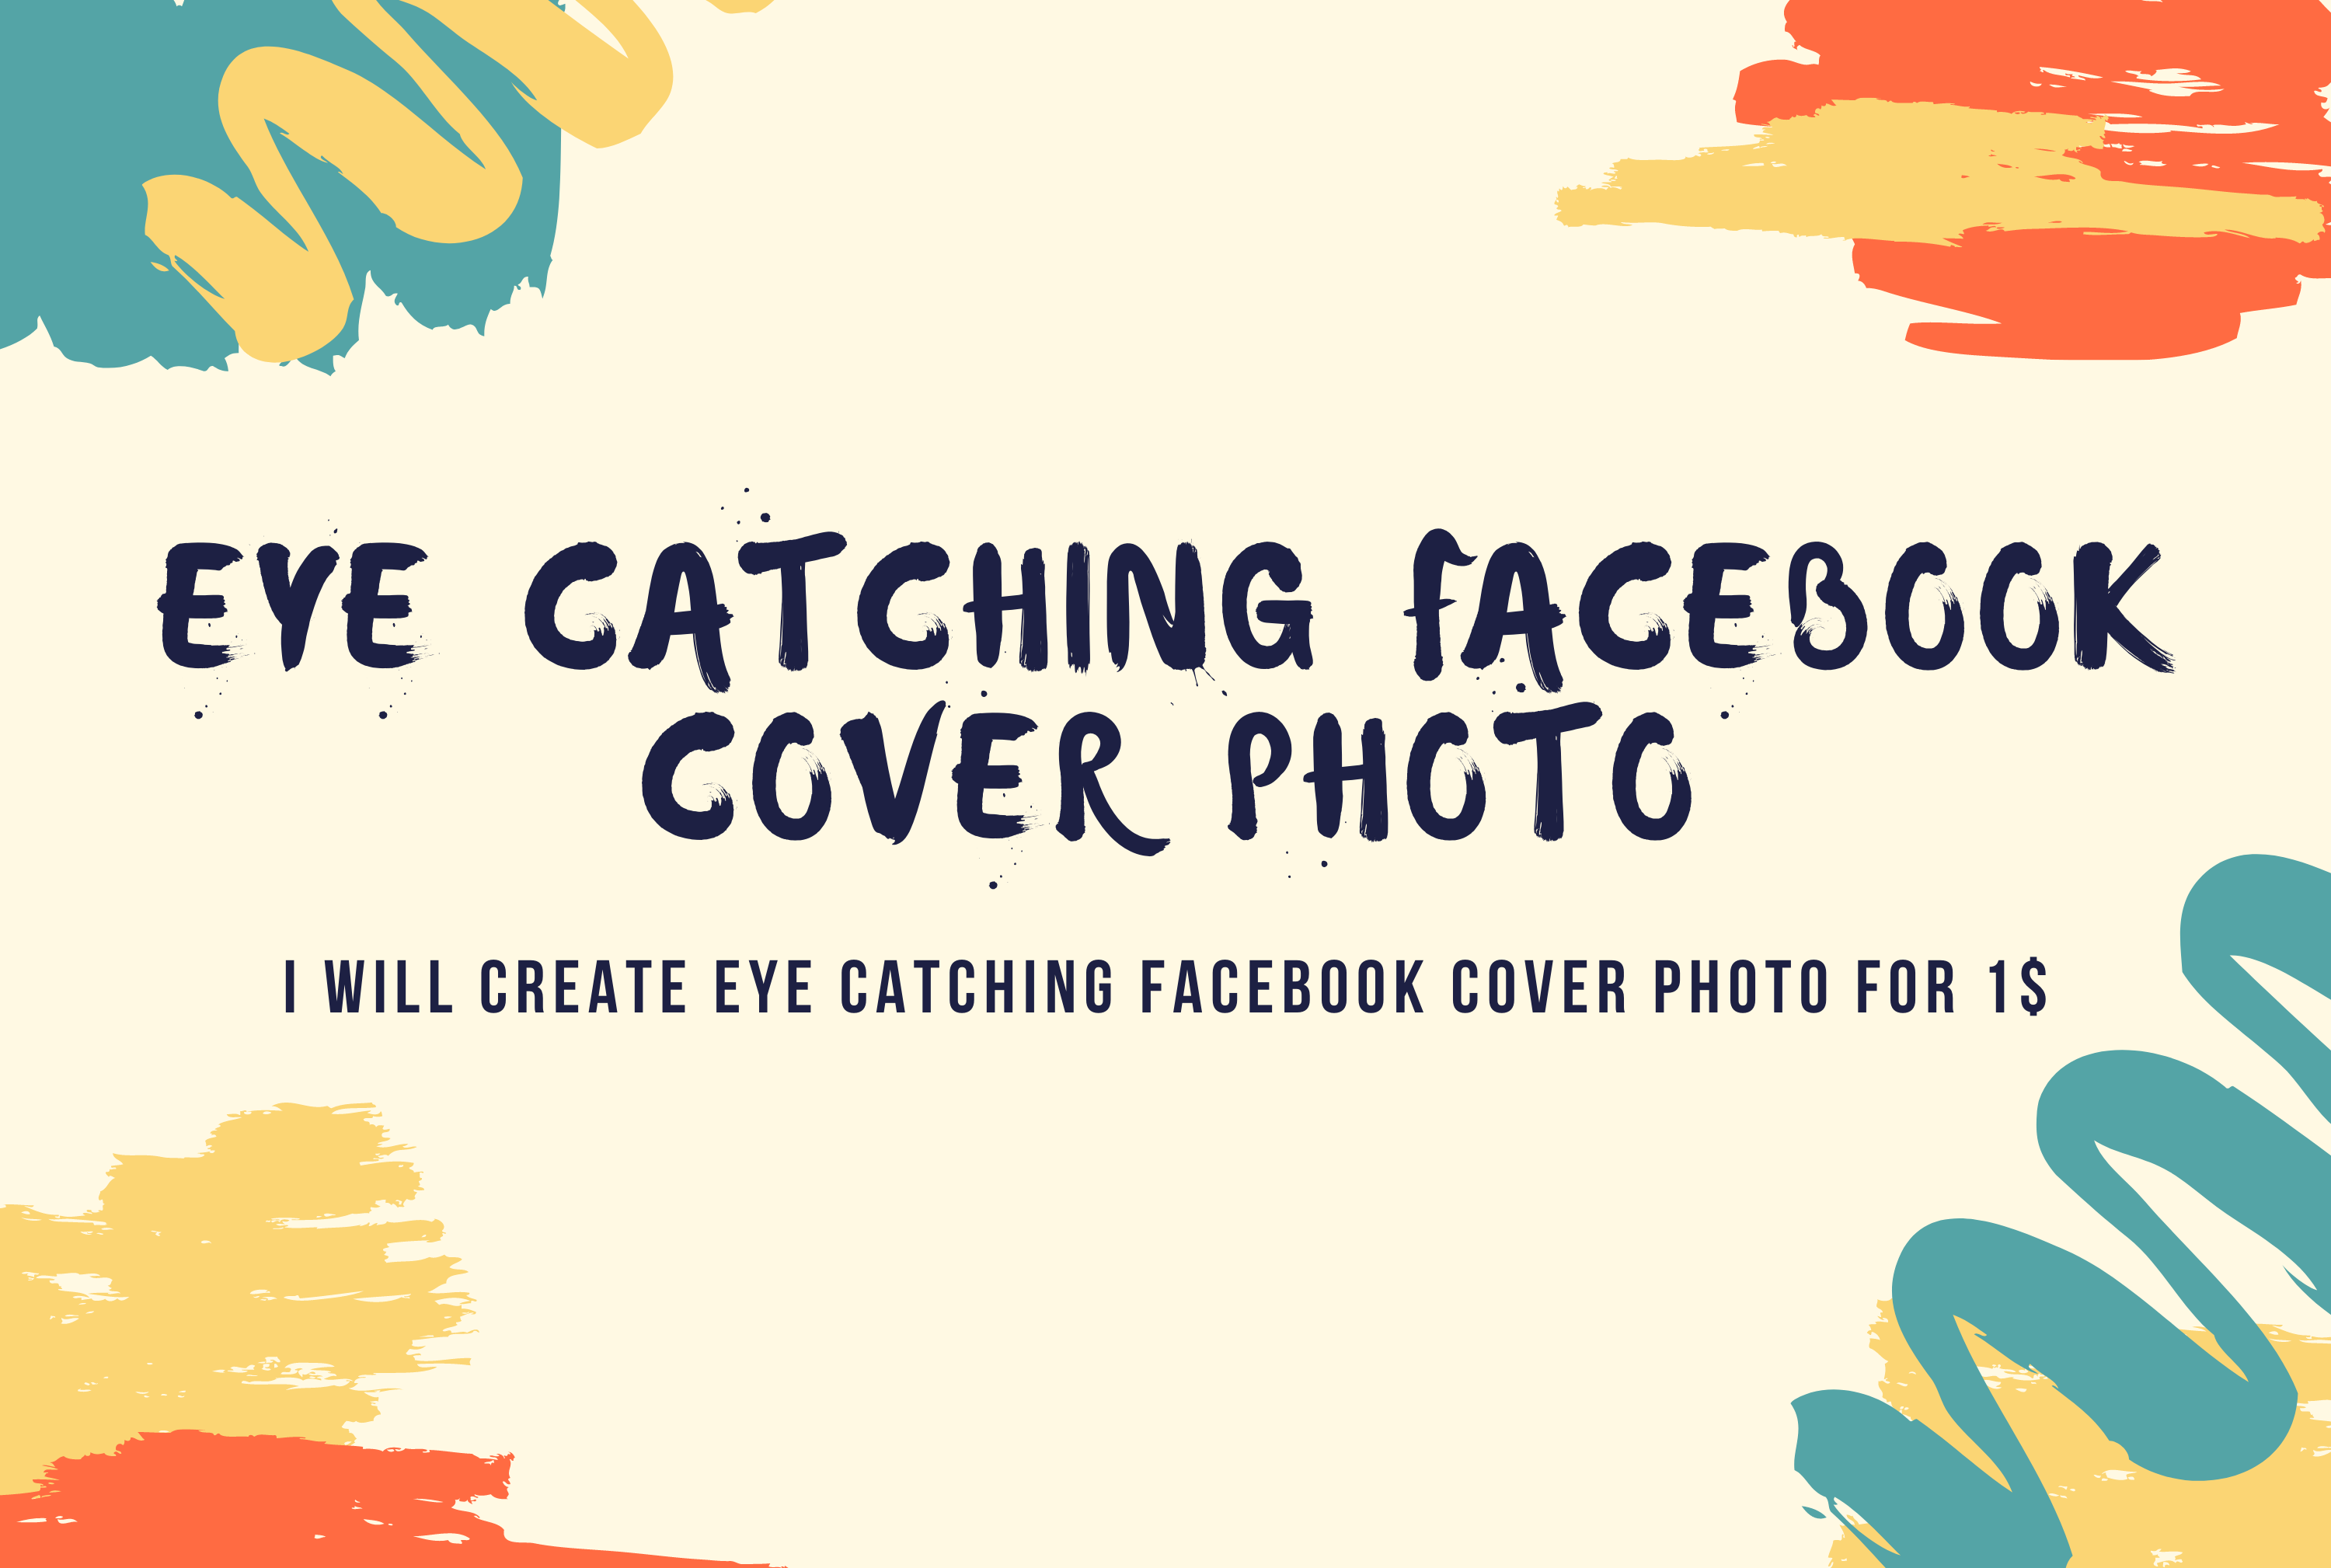 I will create eye catching facebook cover photo